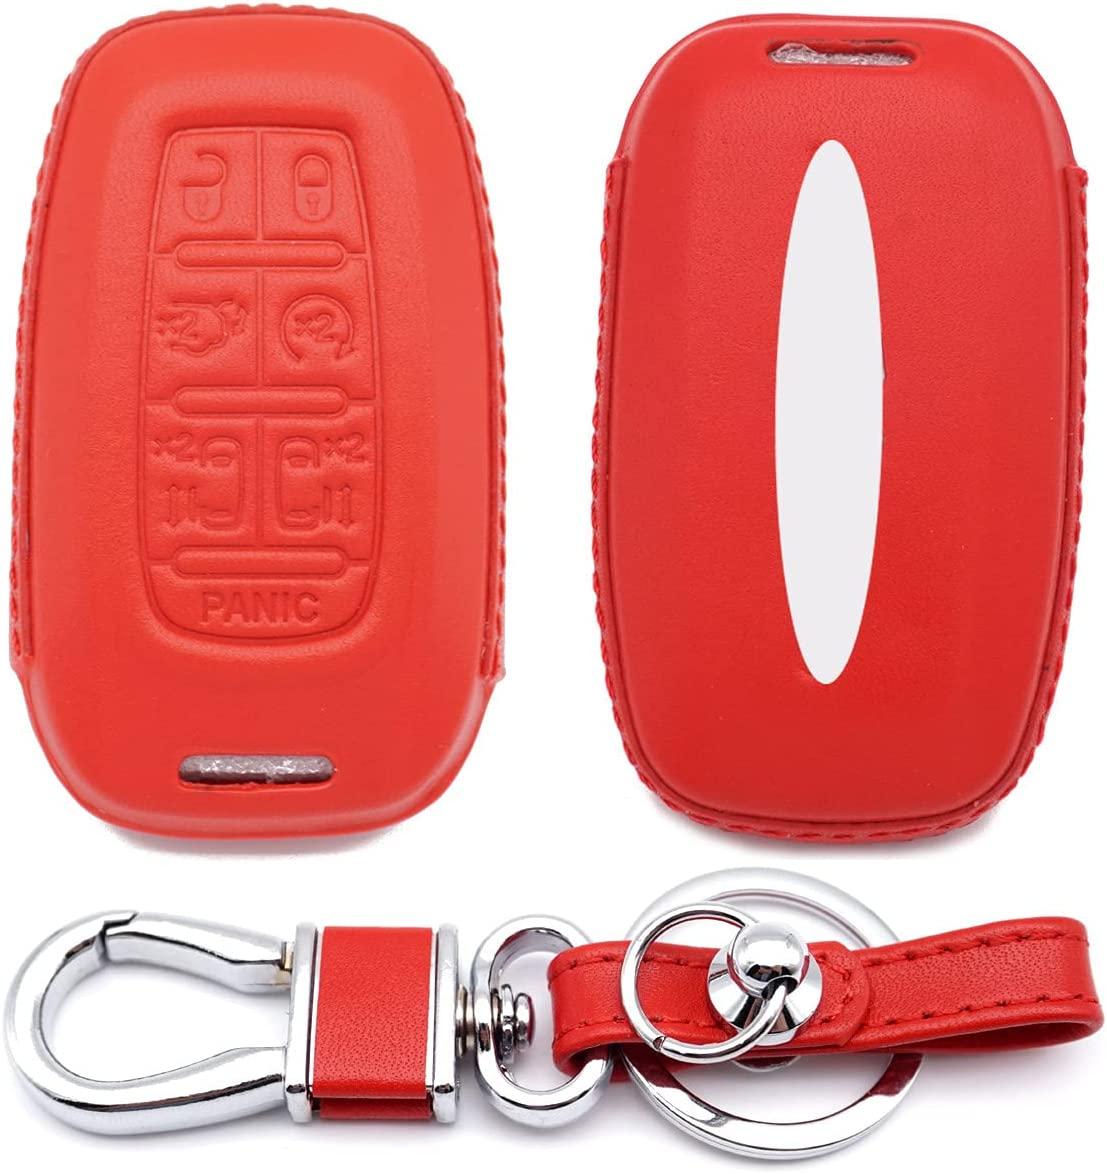 Royalfox(TM) Genuine Leather Full Protected Smart Remote Key Fob case Cover for Chrysler 2017 2018 2019 2020 2021 Pacifica,2020 2021 Voyager (red)